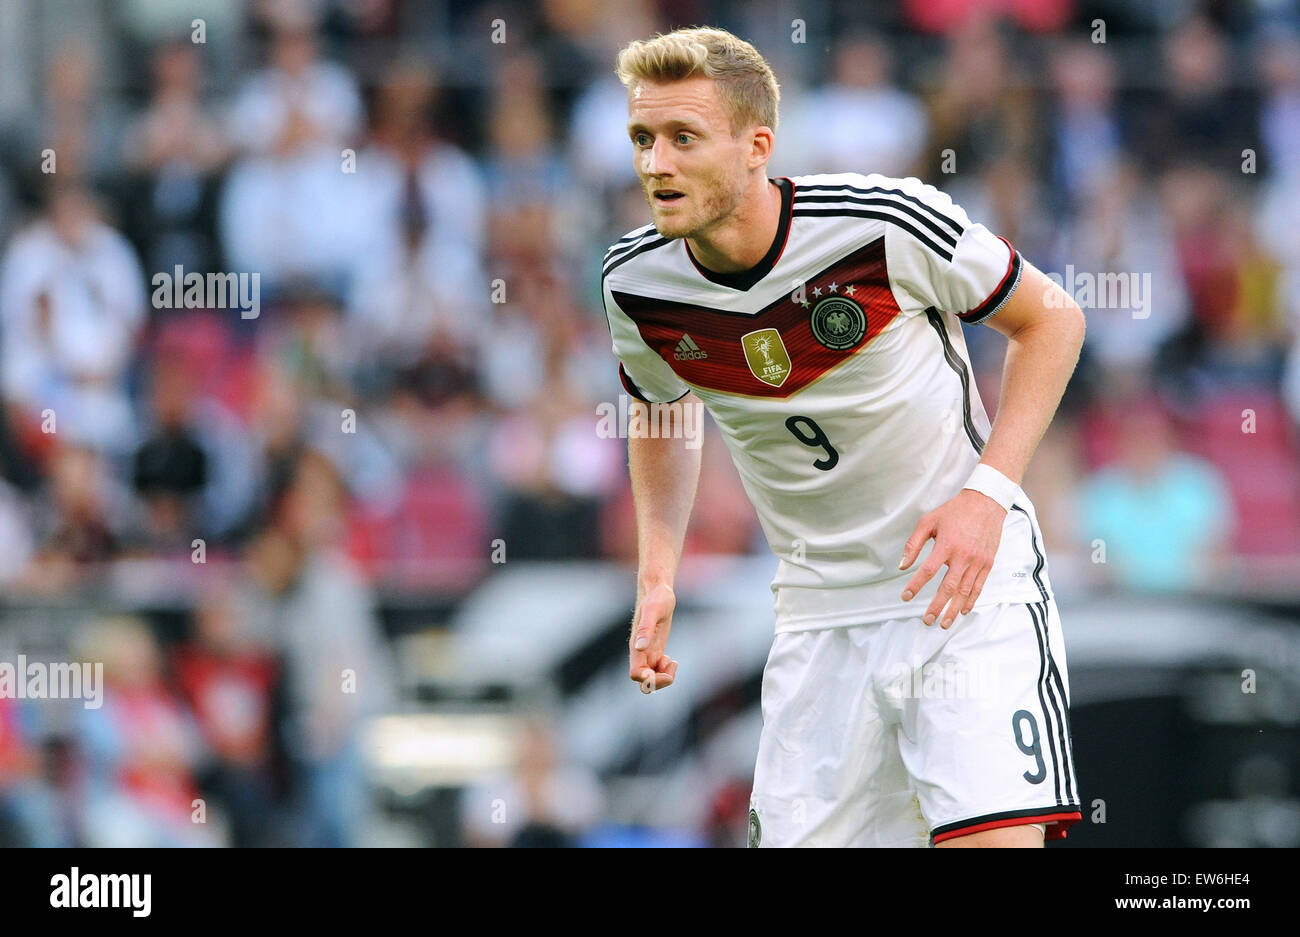 Friendlymatch at Rhein Energie Stadion Cologne: Germany vs USA: Andre Schuerrle (GER) - Stock Image